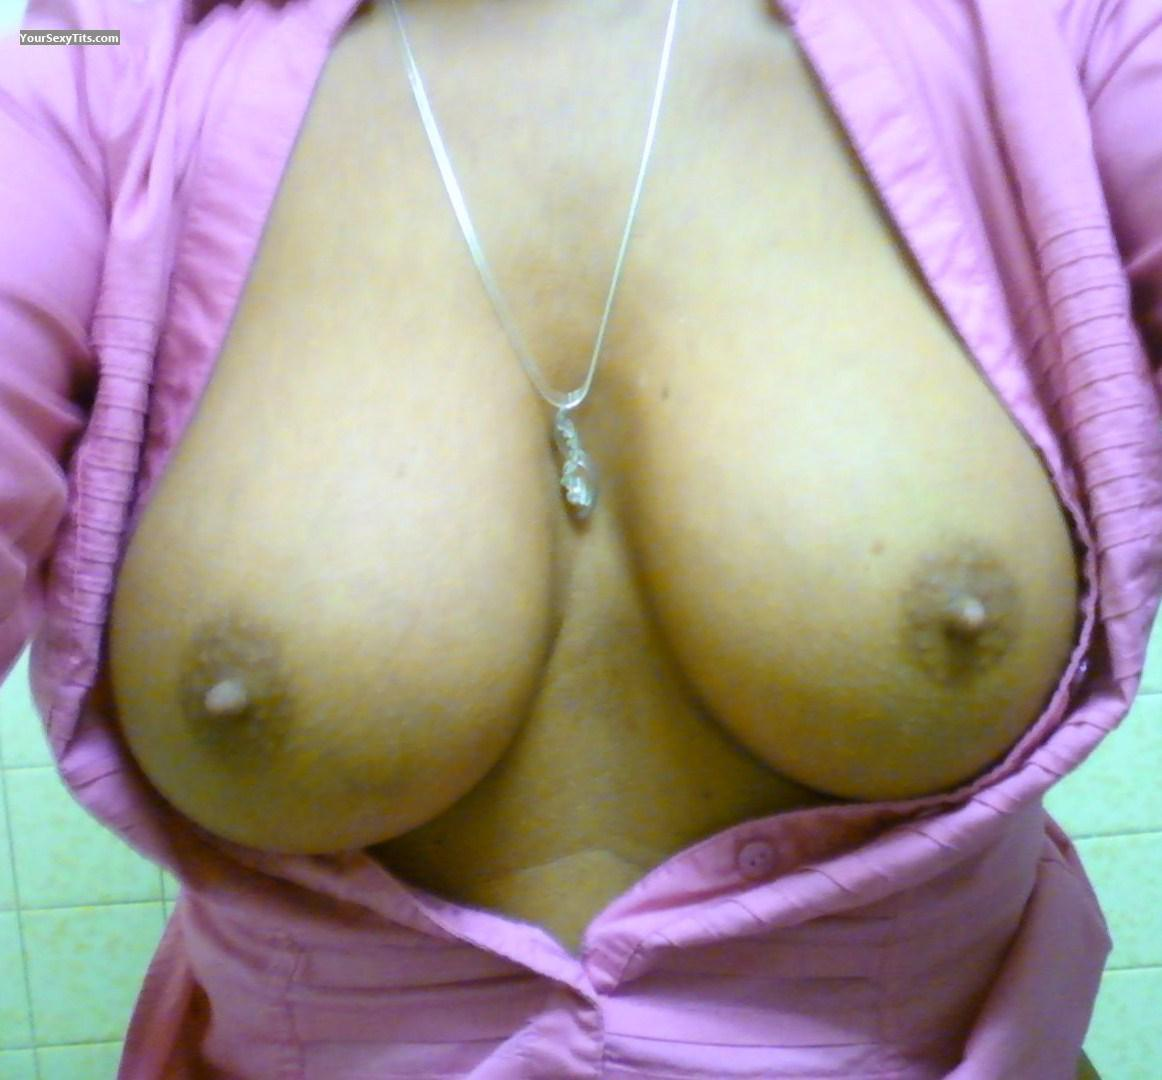 My Big Tits WI Girl